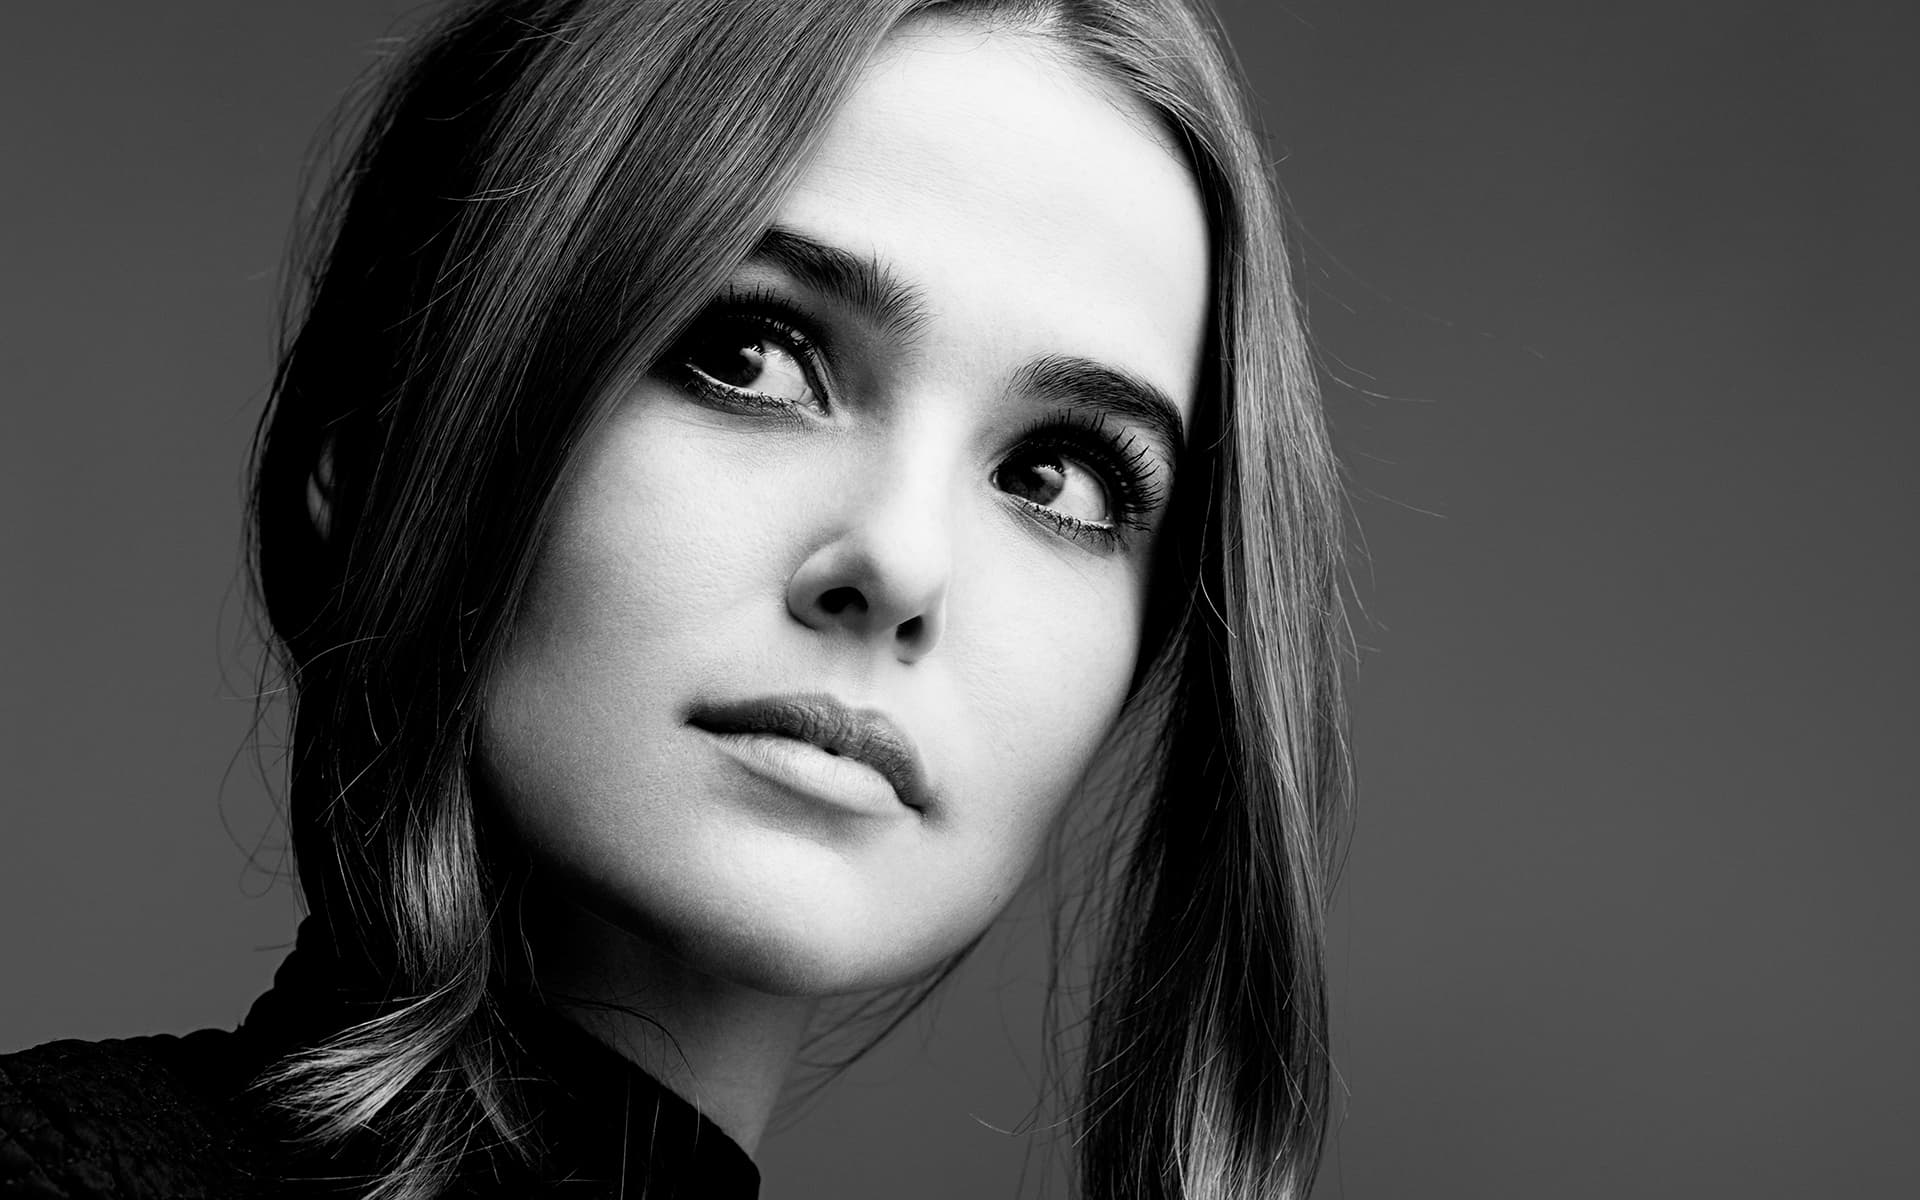 monochrome zoey deutch wallpaper 55403